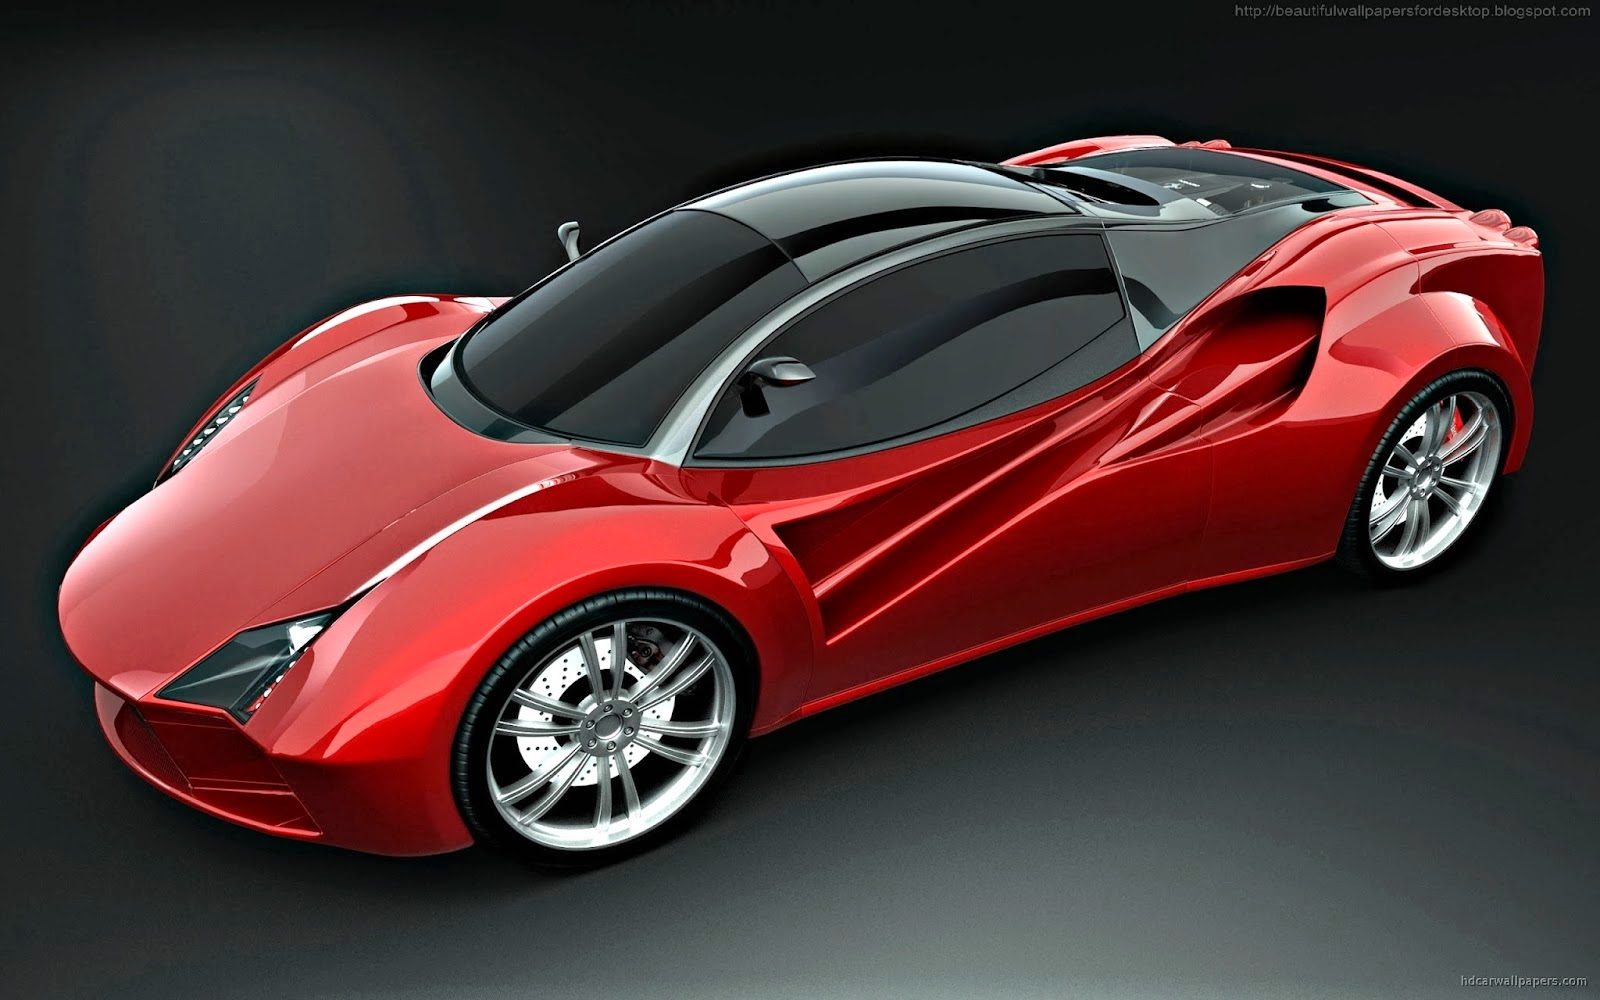 Free download wallpapers of cars red cars wallpapers beautiful red ...